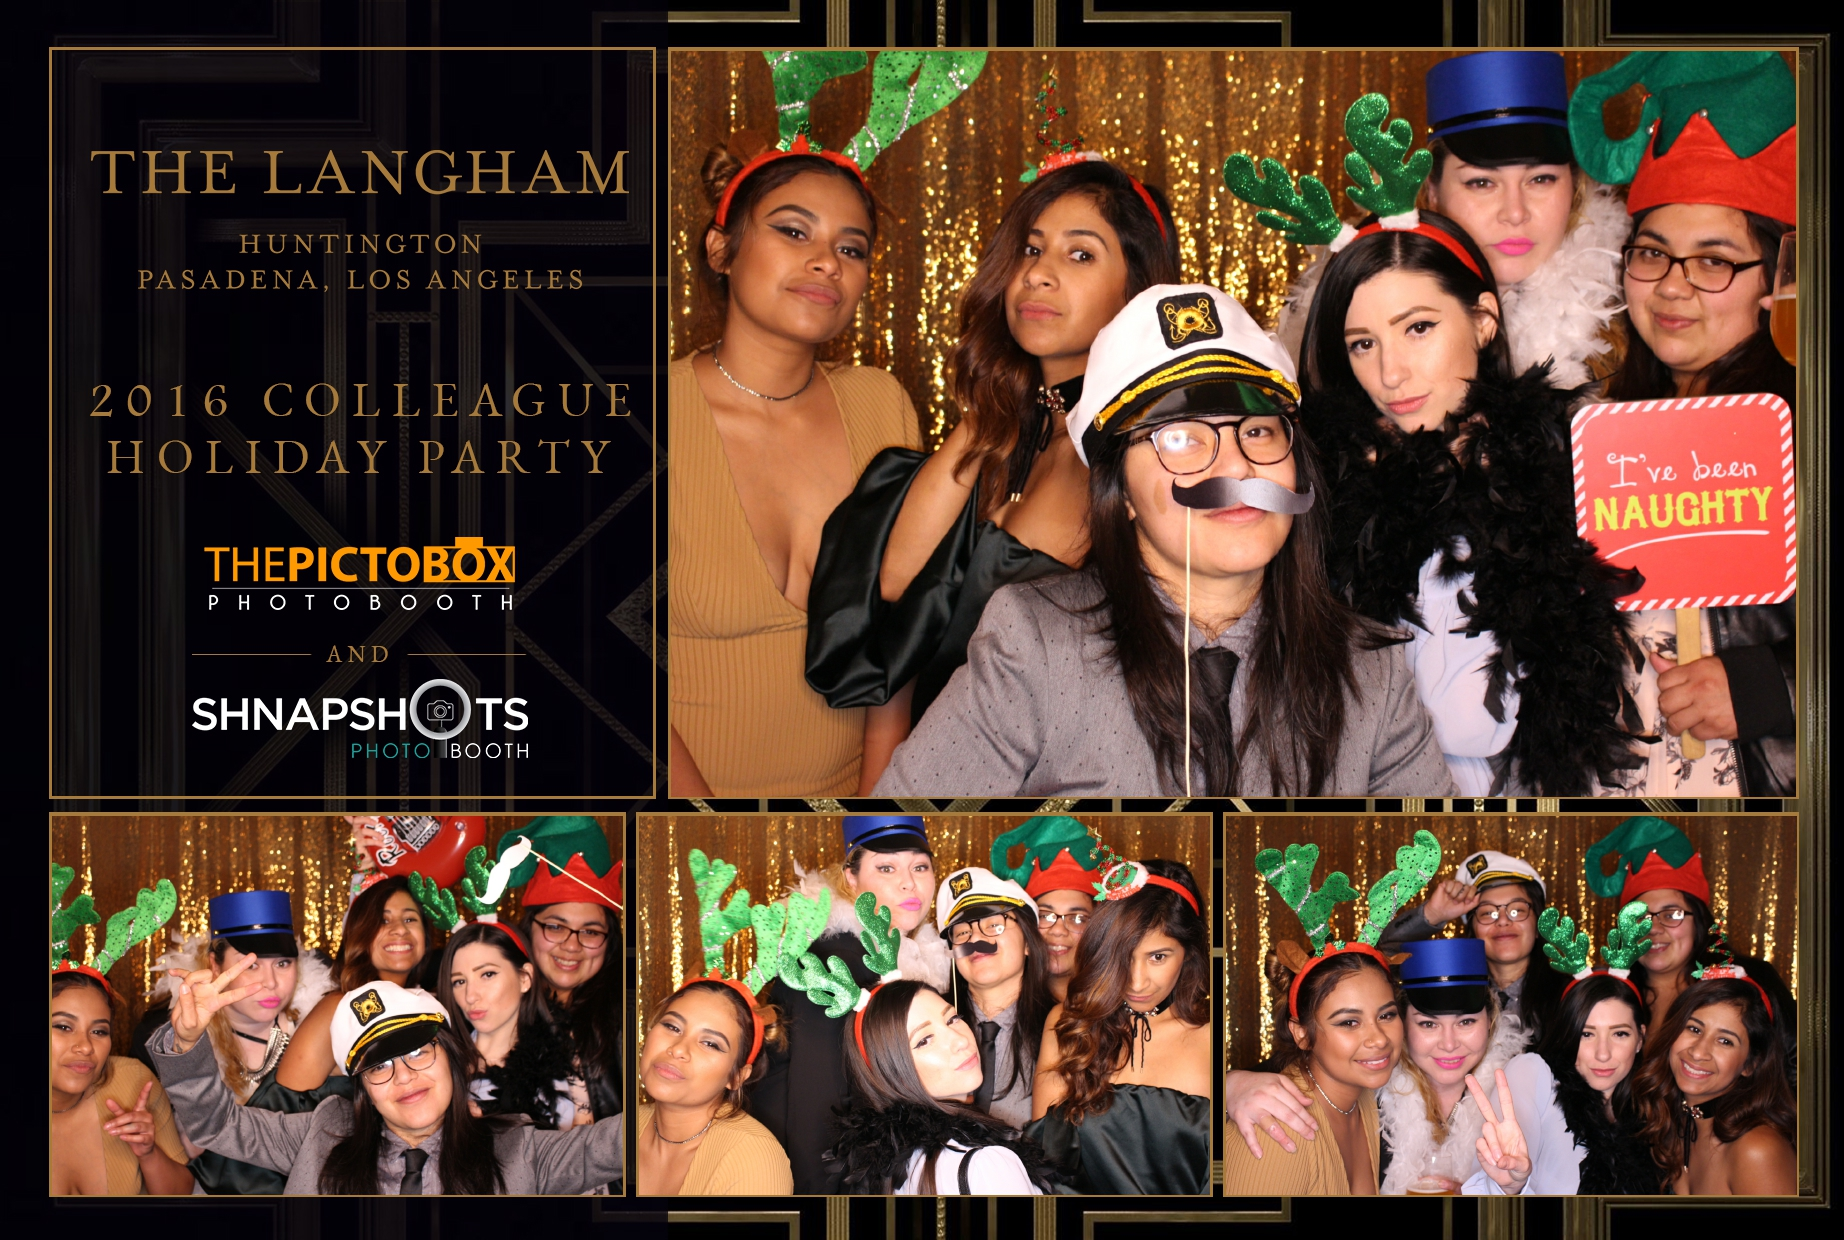 The Langham Colleague Holiday Party